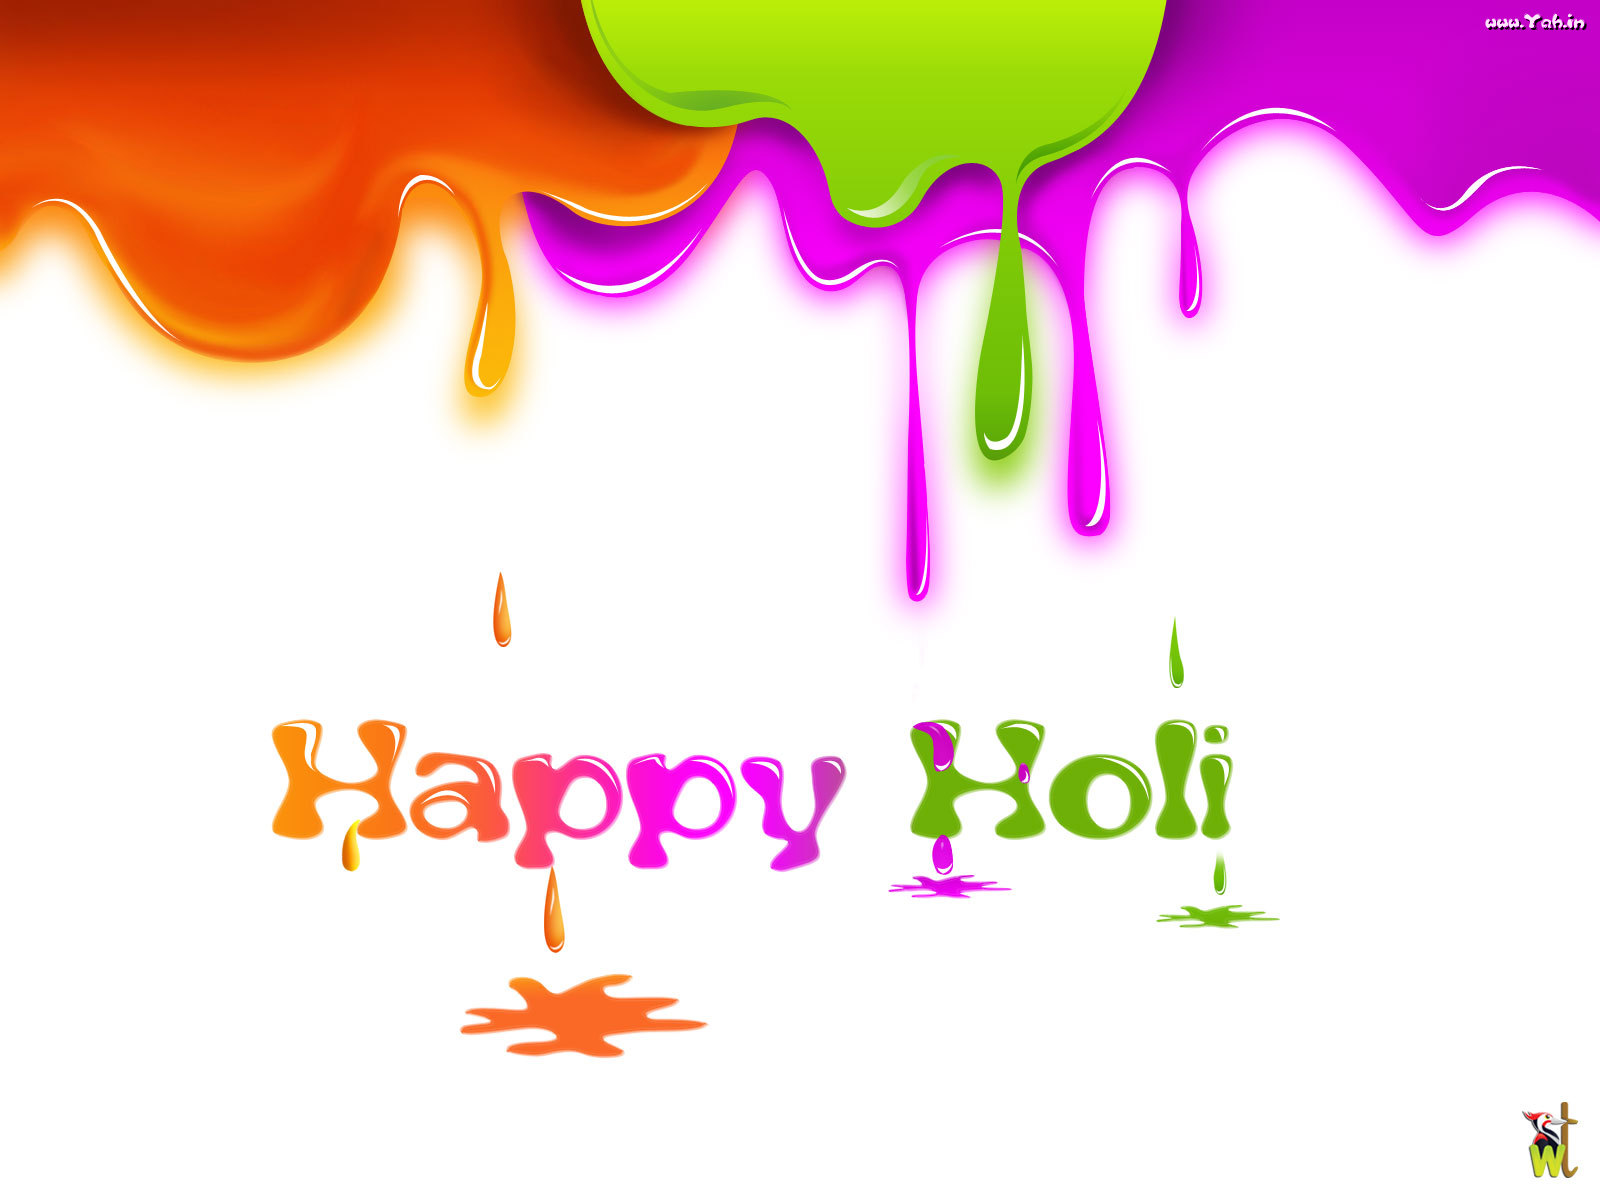 http://4.bp.blogspot.com/-KQngQMDJg30/T1eH9cRneHI/AAAAAAAAAXM/d-dafwNHvoY/s1600/Happy-Holi-Latest-HD-Wallpapers-2012.jpg